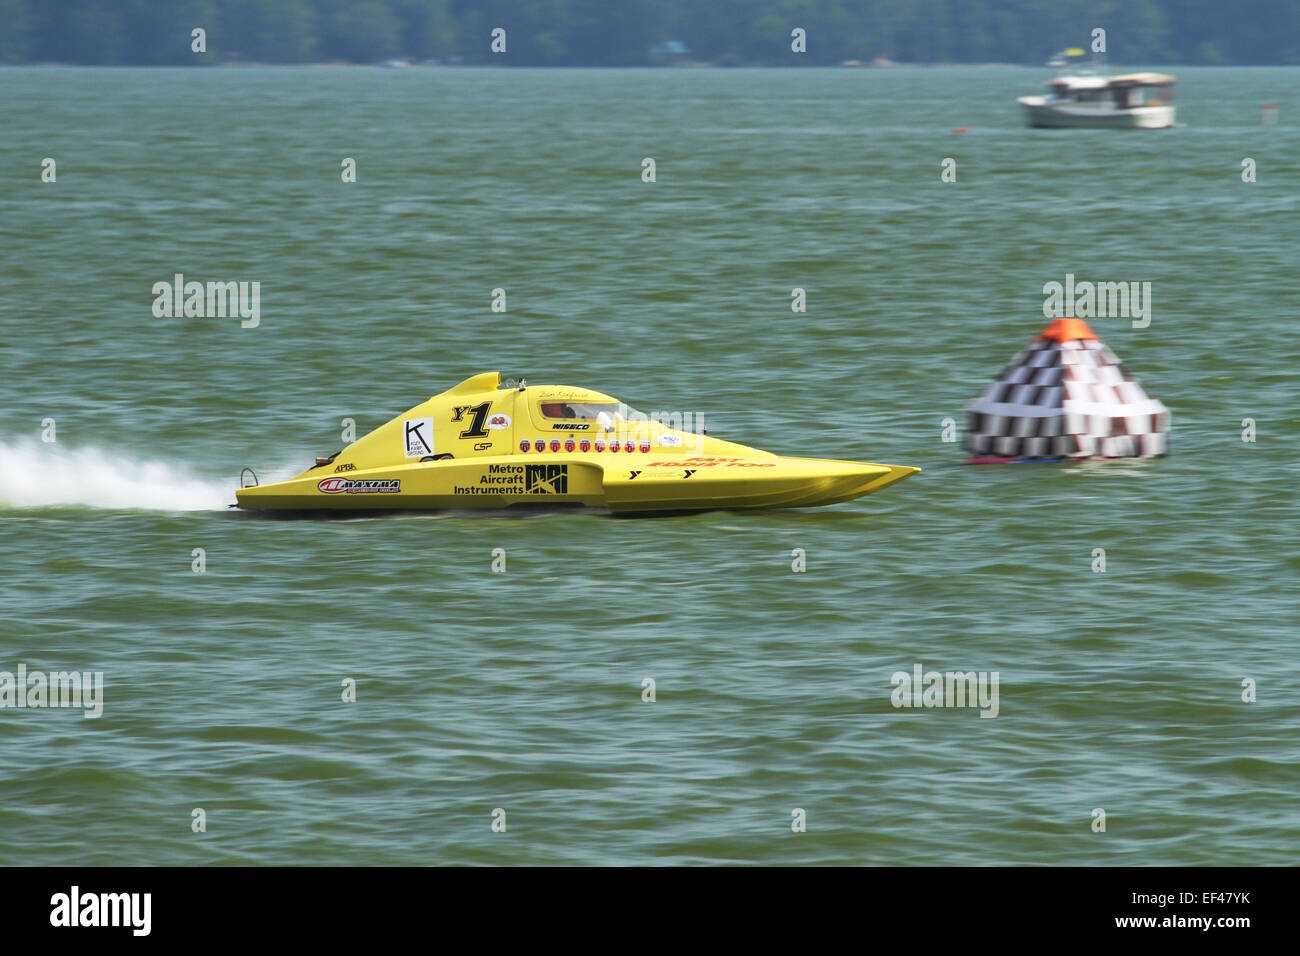 Boat Y1  Class Y, 1 5 Liter Modified Hydroplane  Boat Racing